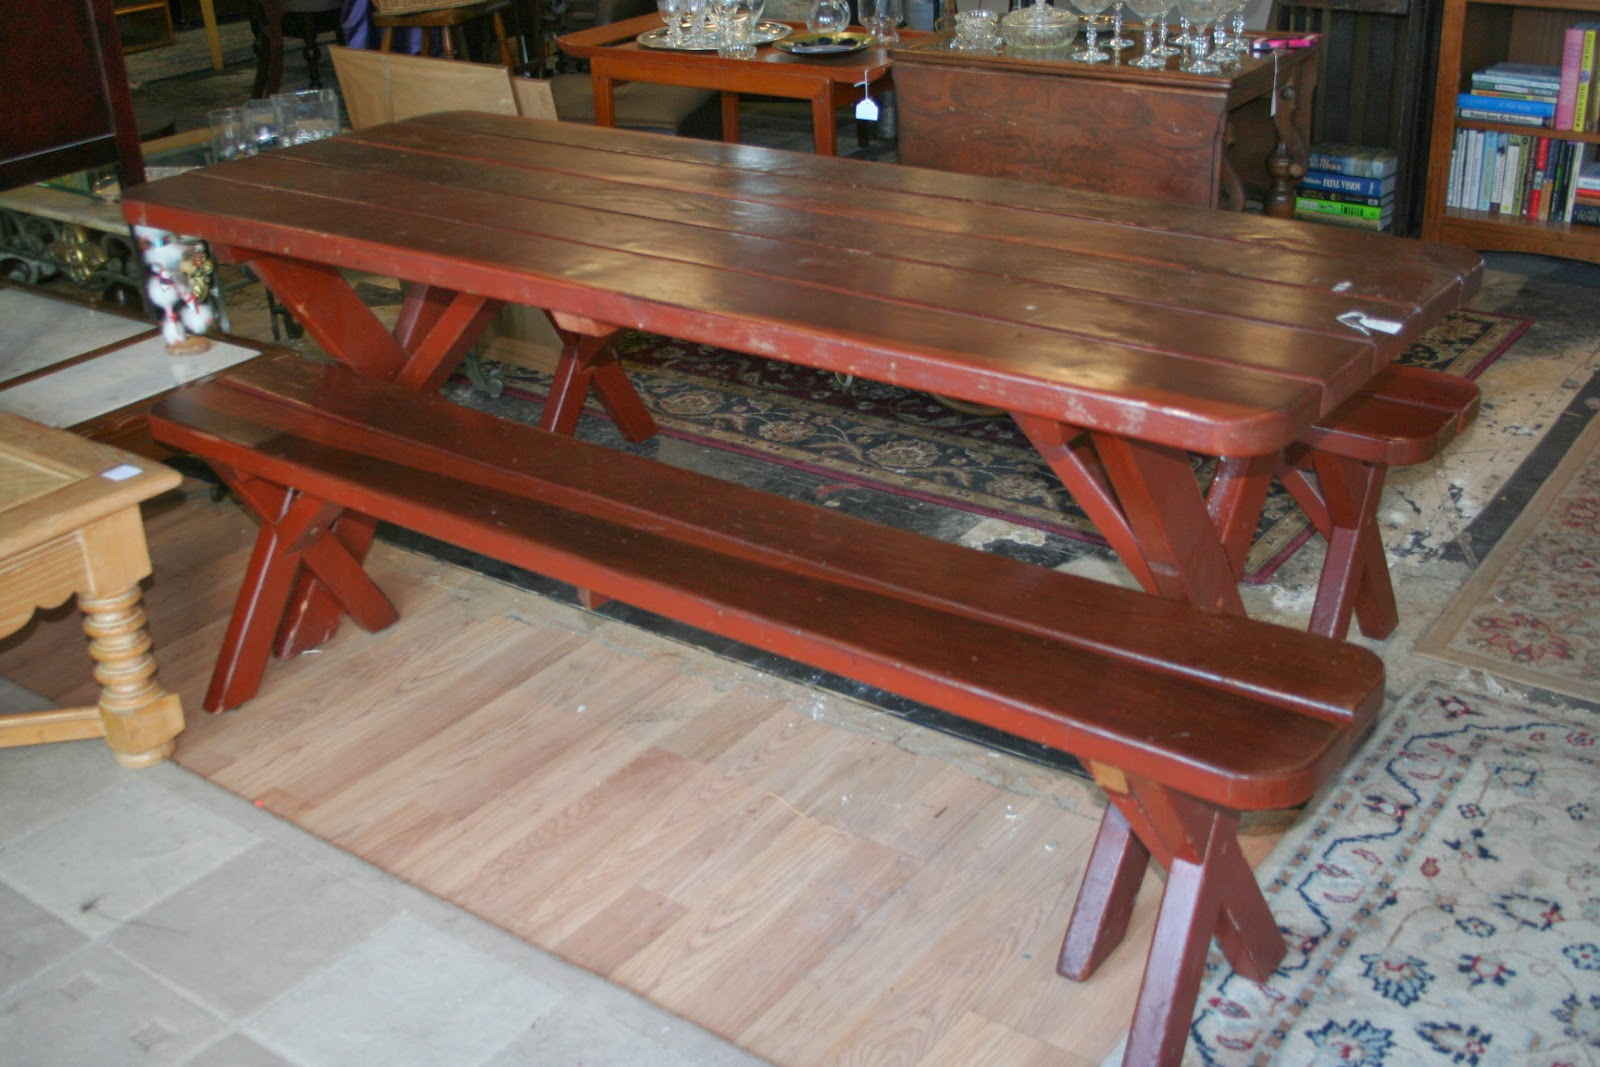 farm style table with storage bench modern architecture farm style kitchen table Farm Style Table With Storage Bench Modern Architecture